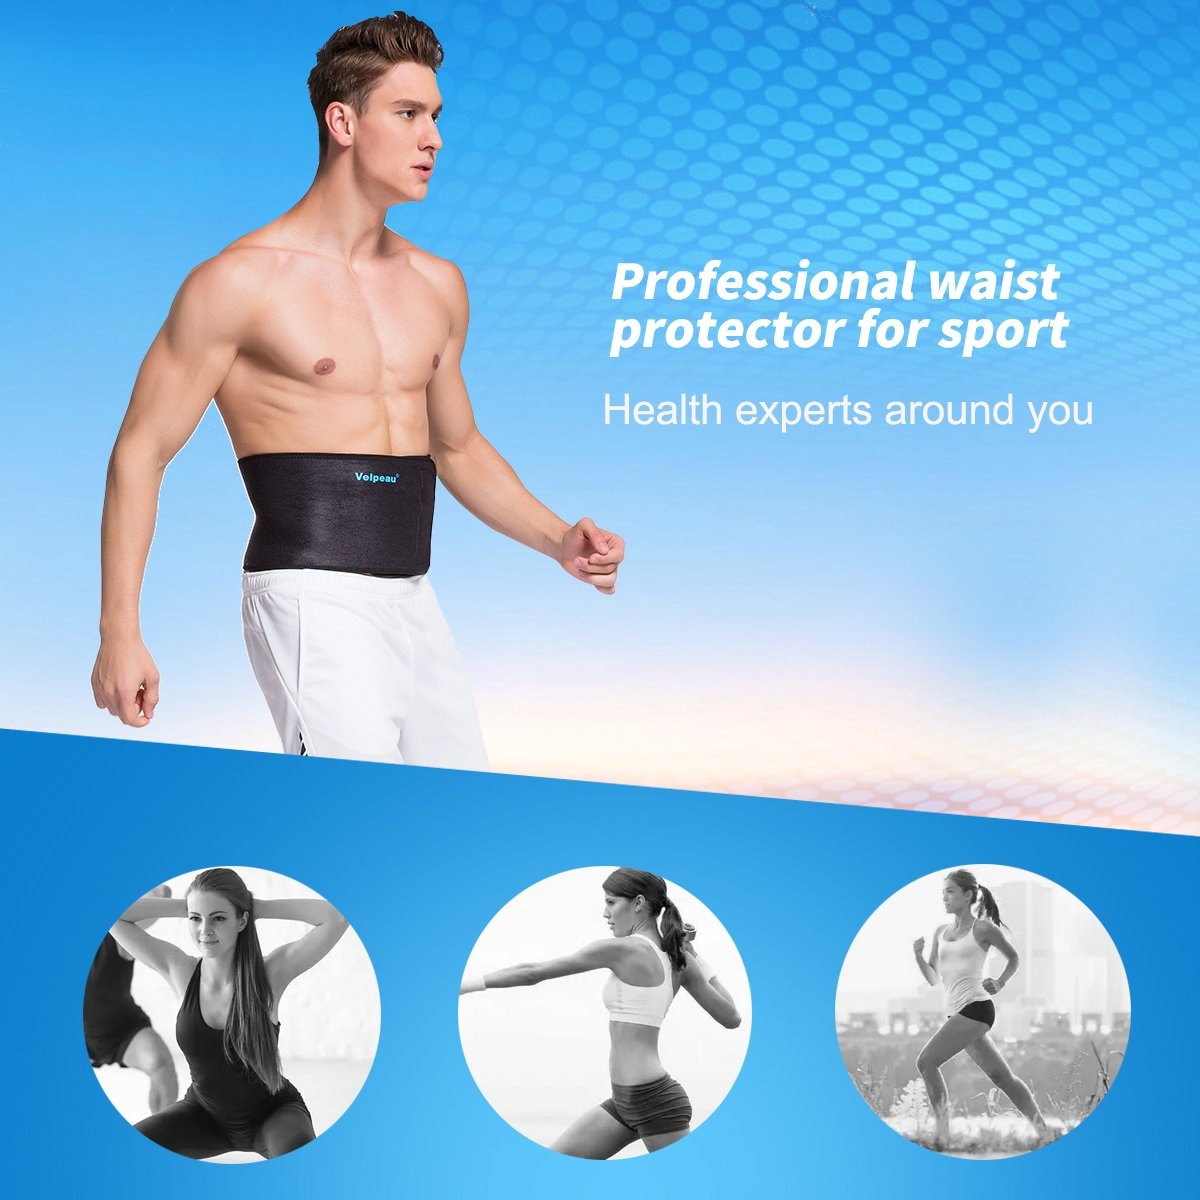 Elastic Waist Trimmer - Lower Back Support - Abdominal Belt - High Quality Neoprene Waist Belt Relieves Strain of Lumbar Muscles for Men & Women by Velpeau (Large Black)